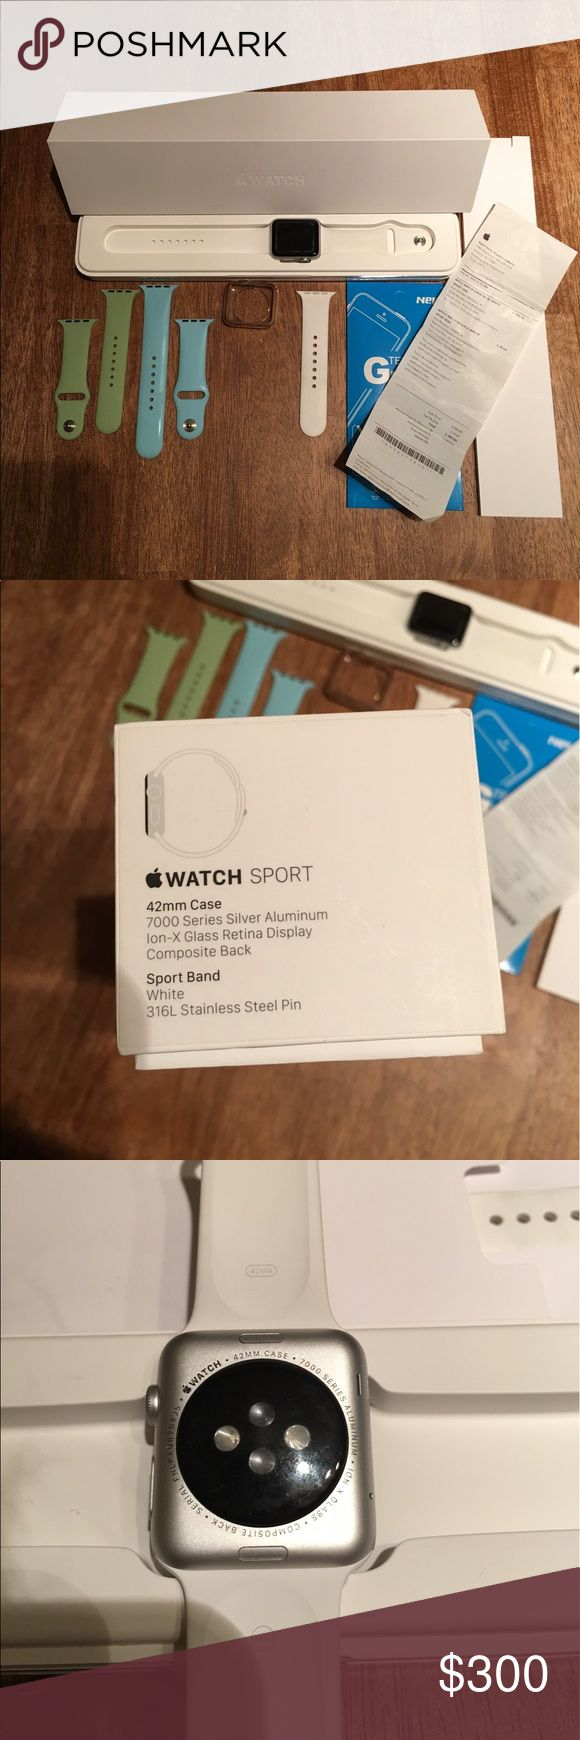 Apple Watch Sport 42mm Practically Brand New! Series 1 Sport, 42mm, Aluminum casing Has a slight scratch on the top right corner of the screen - it's not noticeable at all - AppleCare would cover it. Will be wiped clean before shipping! - unlocked, cleaned etc. HAS AppleCare until 7/29/17! - I will include the receipt for this. Comes with: Original box charger + port Blue band + green band (not Apple brand) White original band Bumper + screen protector. I just upgraded and don't have a…